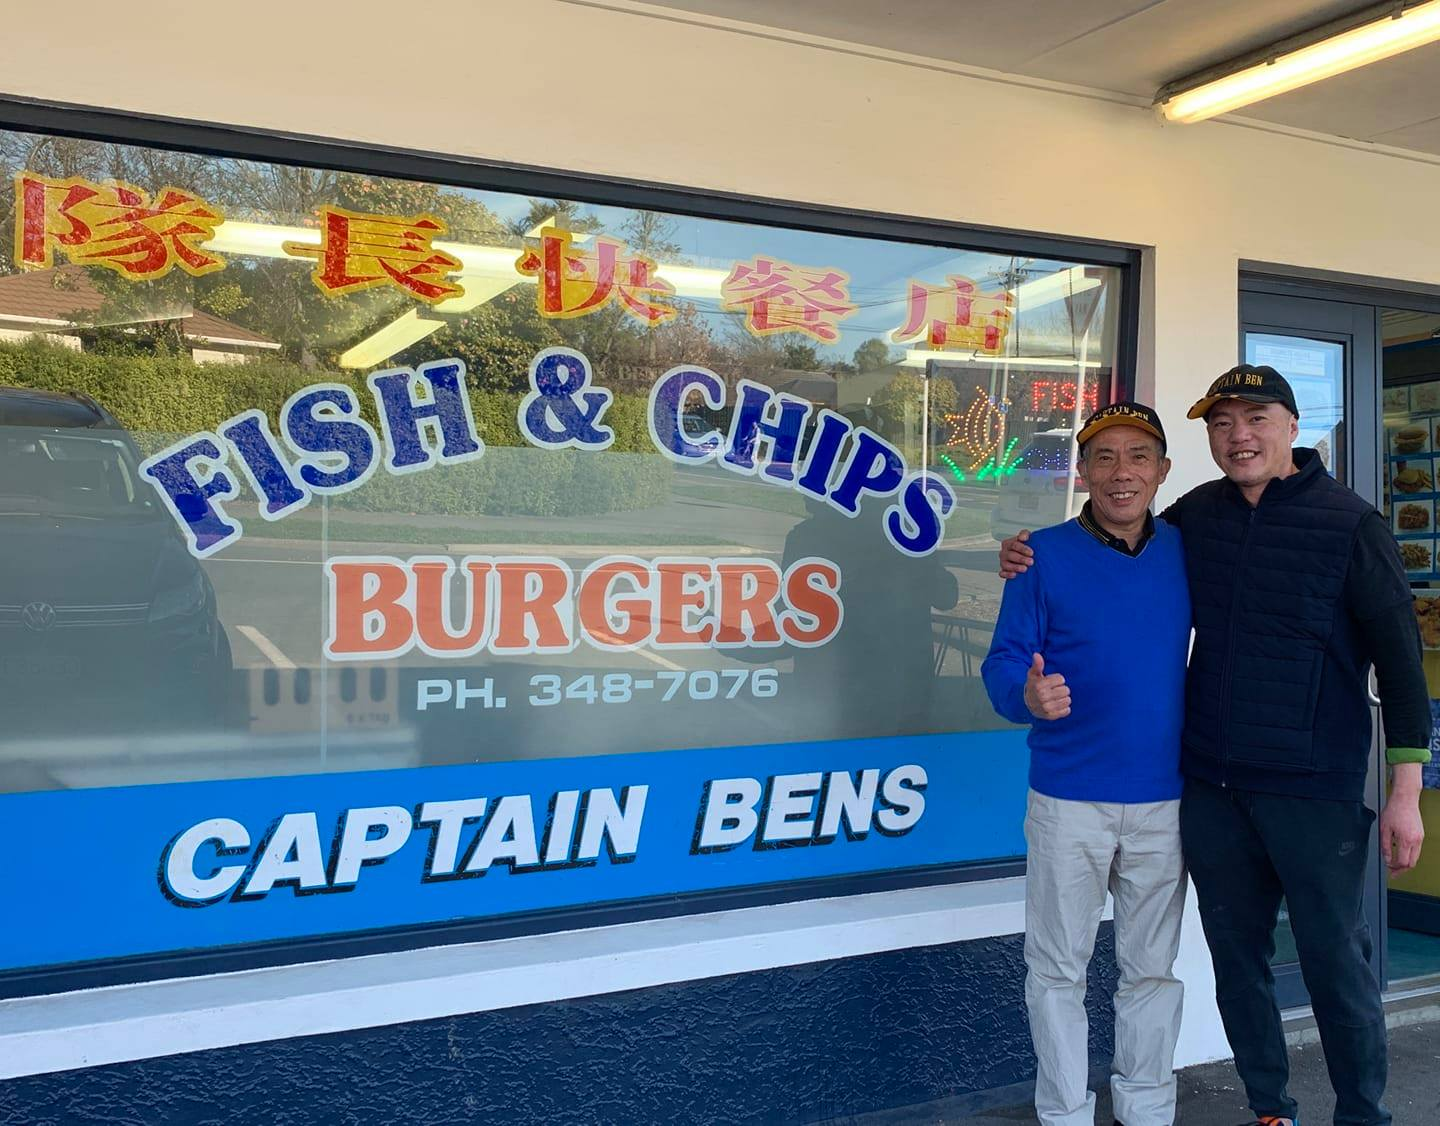 Former Captain Ben's owner Thanh Bang Lu has retired and is handing over the business to his...